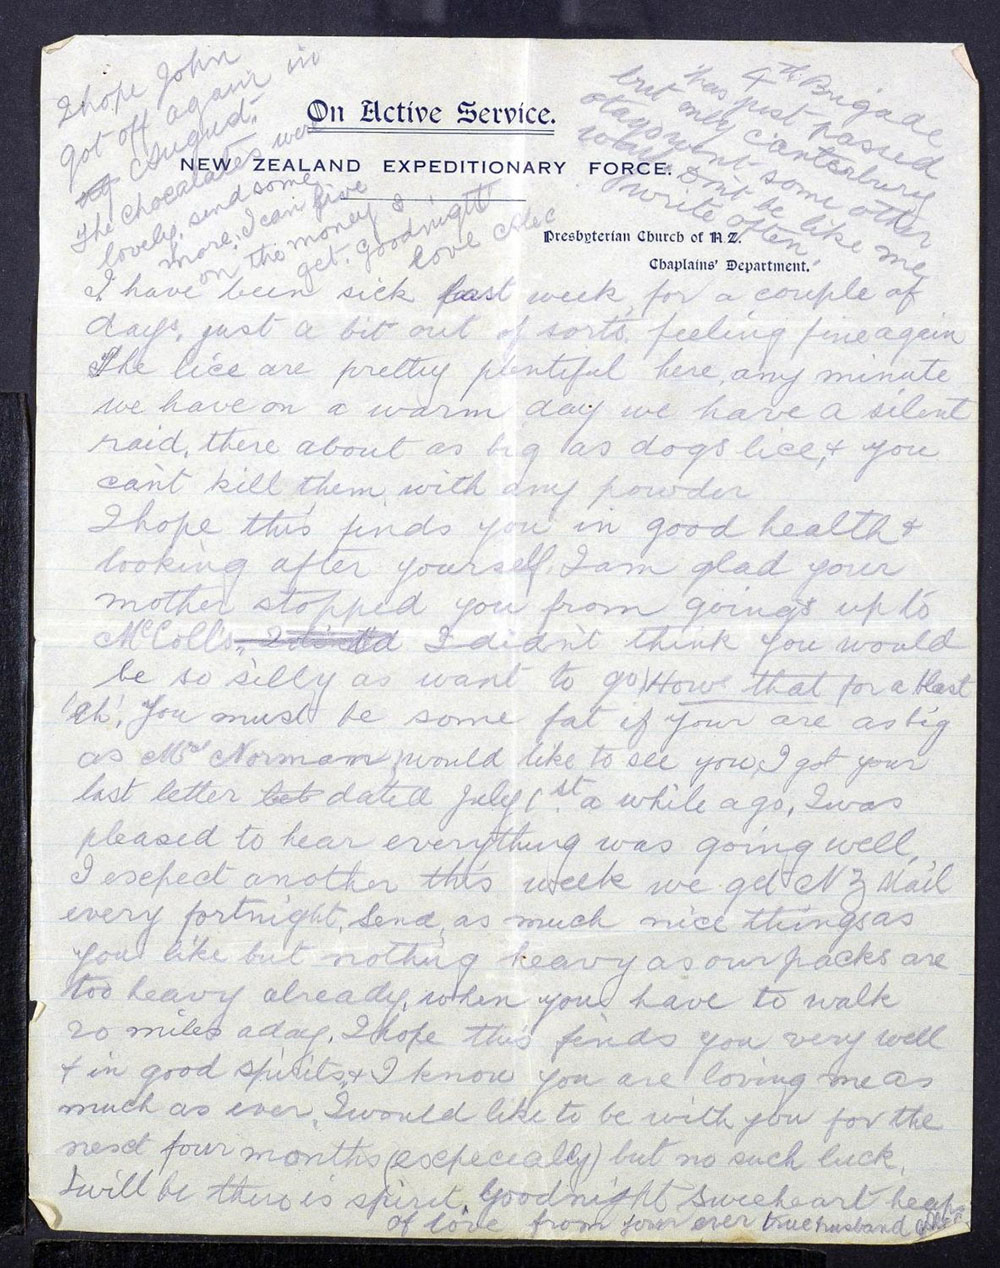 Alexander Mee's Letters to Jessie - 31 August 1917 - Page 3